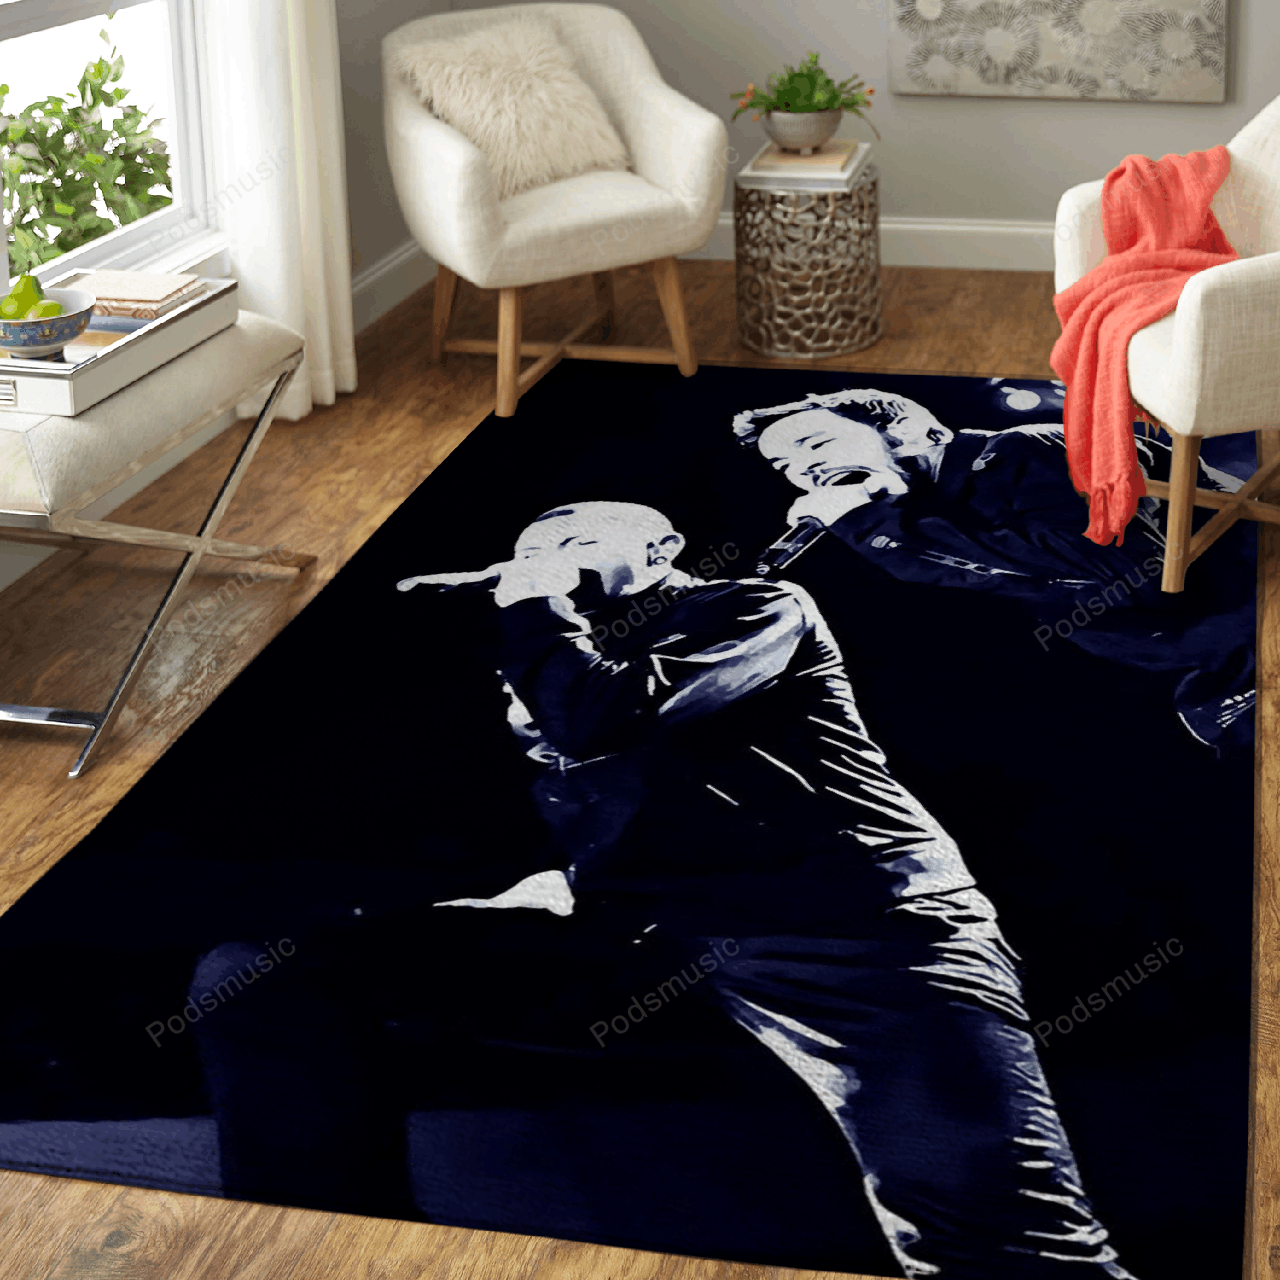 Linkin Park 372 - Music Art For Fans Area Rug Living Room Carpet Floor Decor